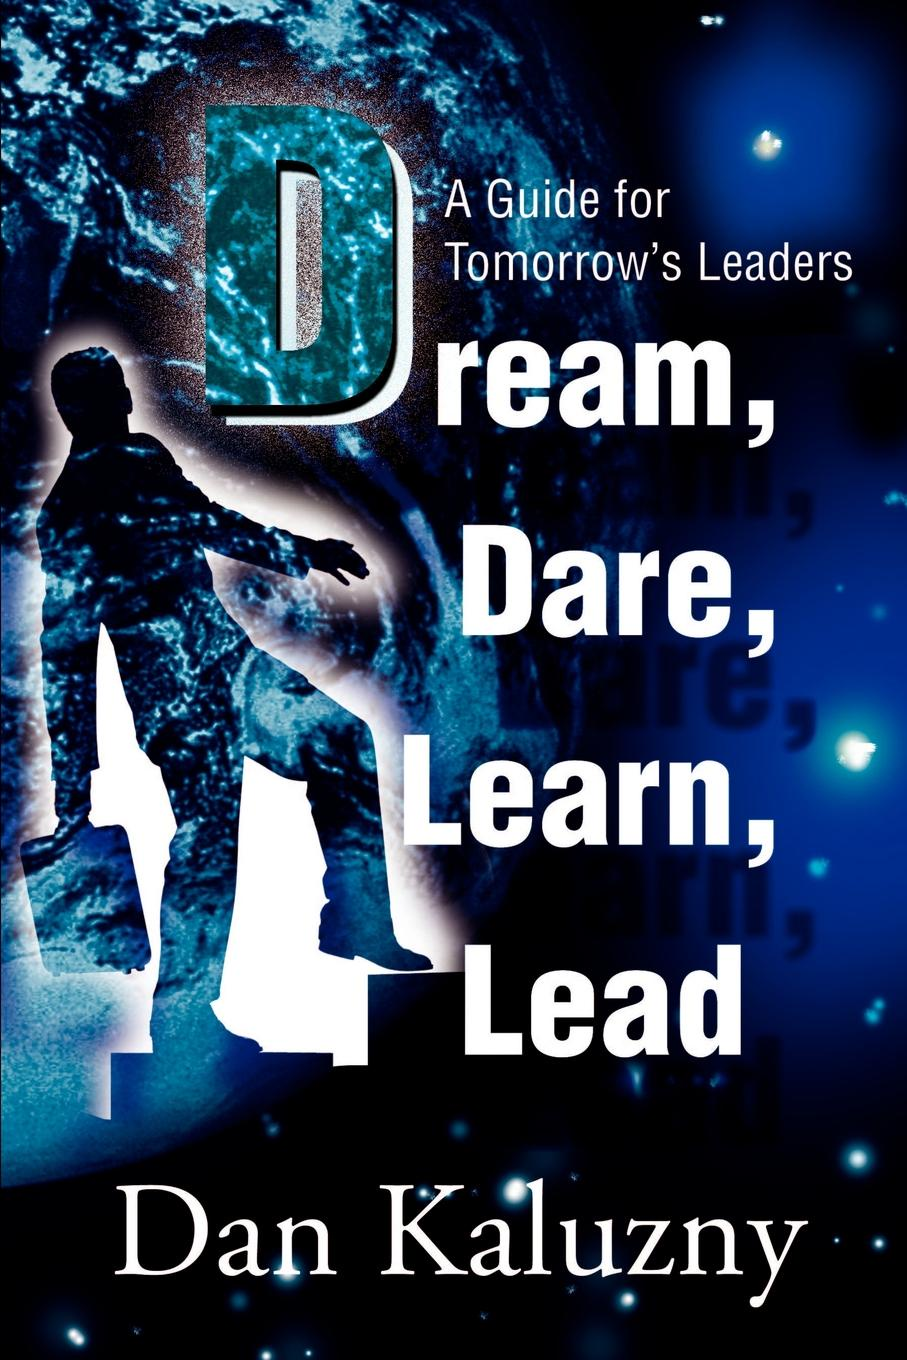 Dan Kaluzny Dream, Dare, Learn, Lead. A Guide for Tomorrow's Leaders leaders